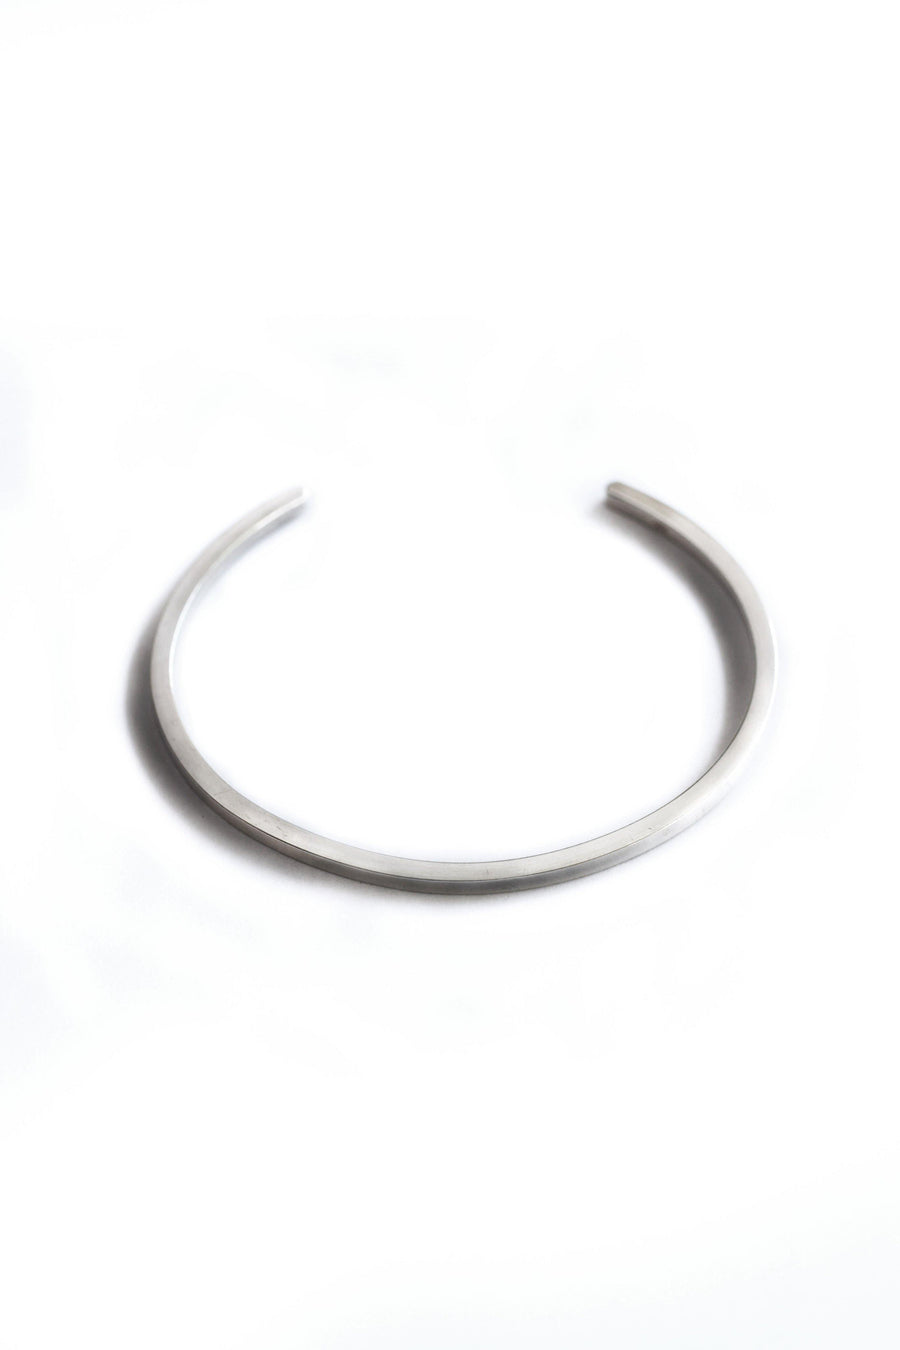 KIKI DIETERLE Simple Bangle Square Wire